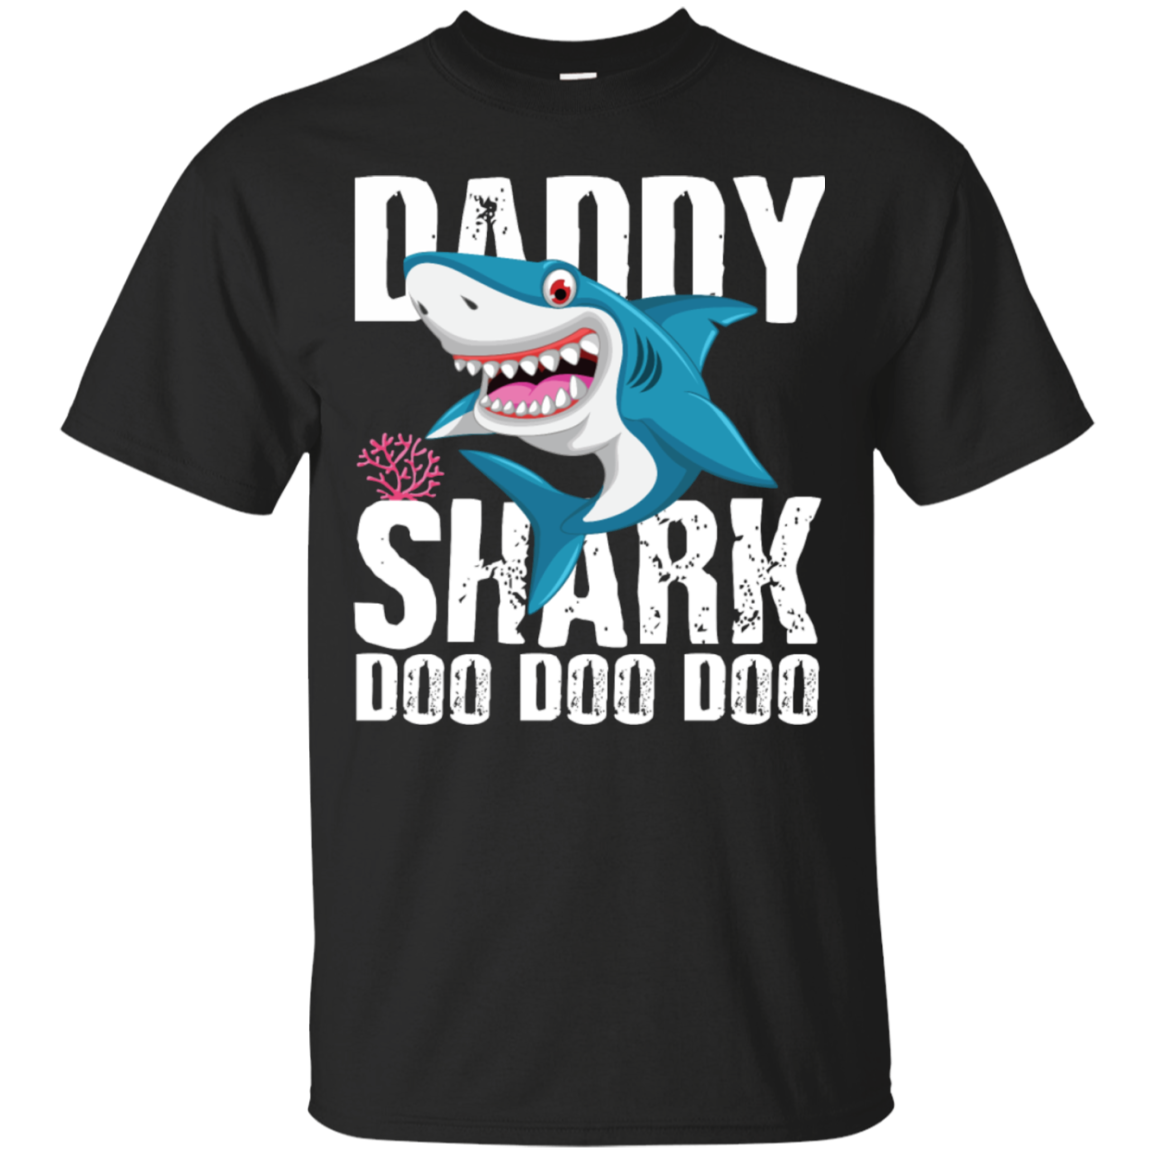 dc06ef7ed Daddy Shark T Shirt Fathers Day Gifts Family Matching Dad - Mila Tees